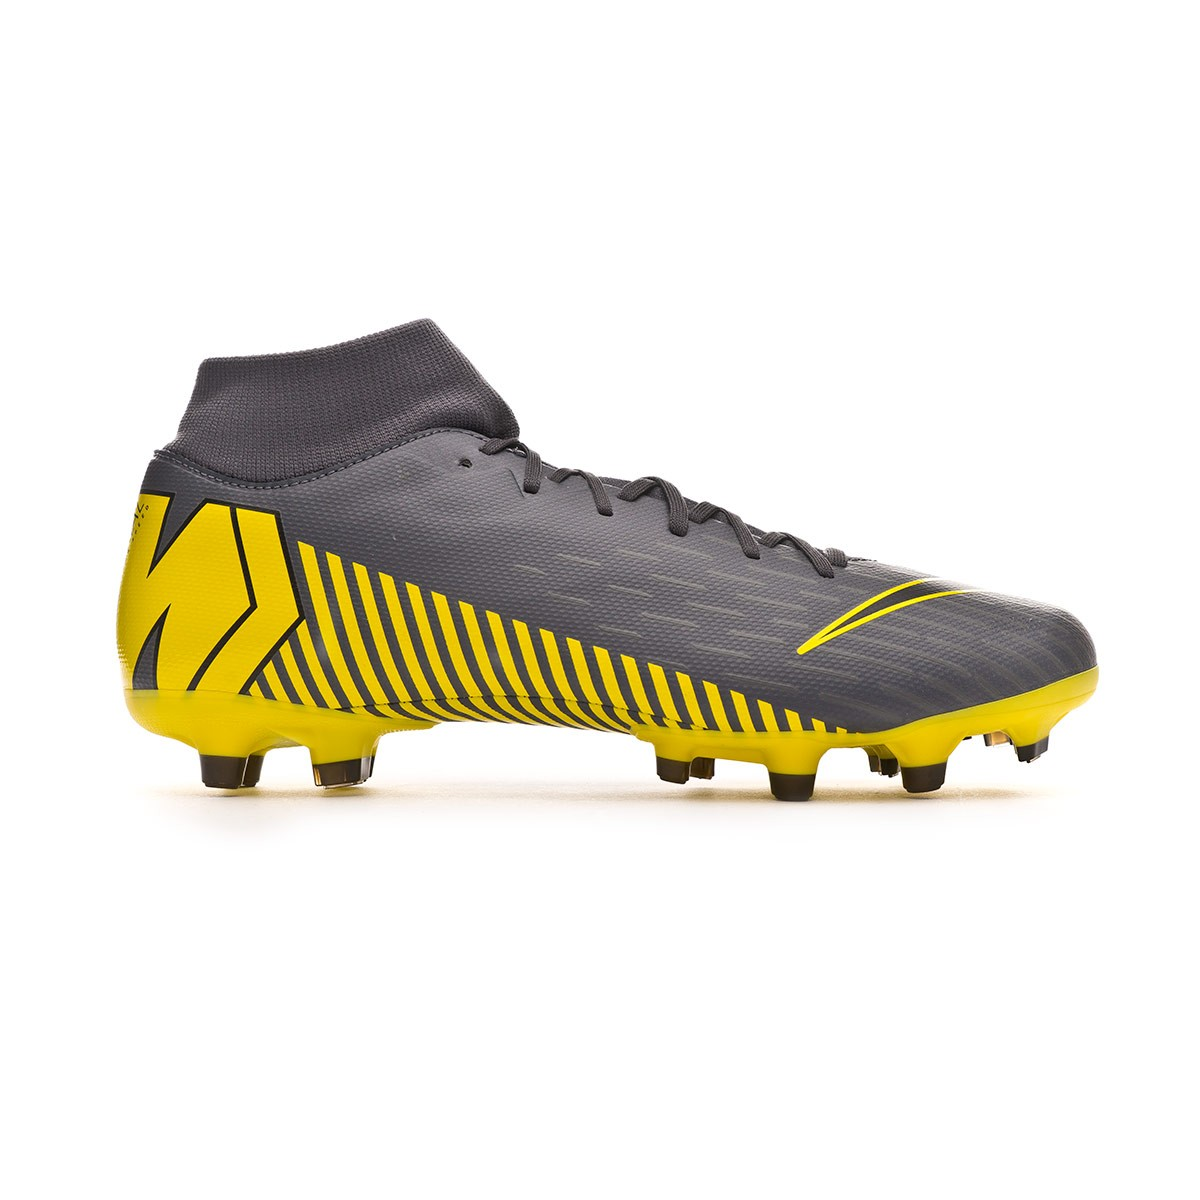 6b1528bb3 Football Boots Nike Mercurial Superfly VI Academy MG Dark grey-Black -  Tienda de fútbol Fútbol Emotion